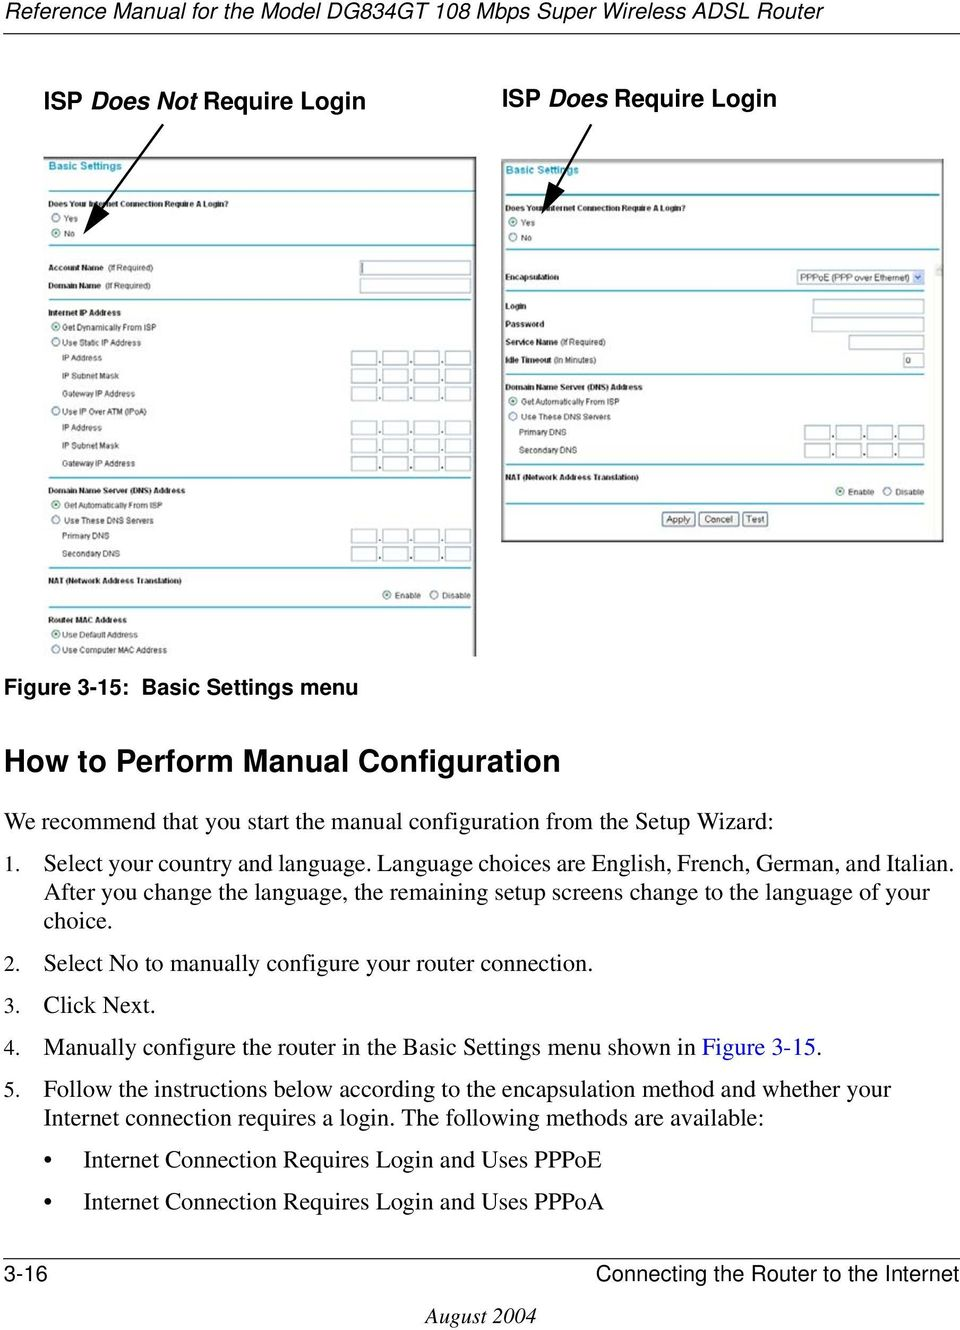 Select No to manually configure your router connection. 3. Click Next. 4. Manually configure the router in the Basic Settings menu shown in Figure 3-15. 5.